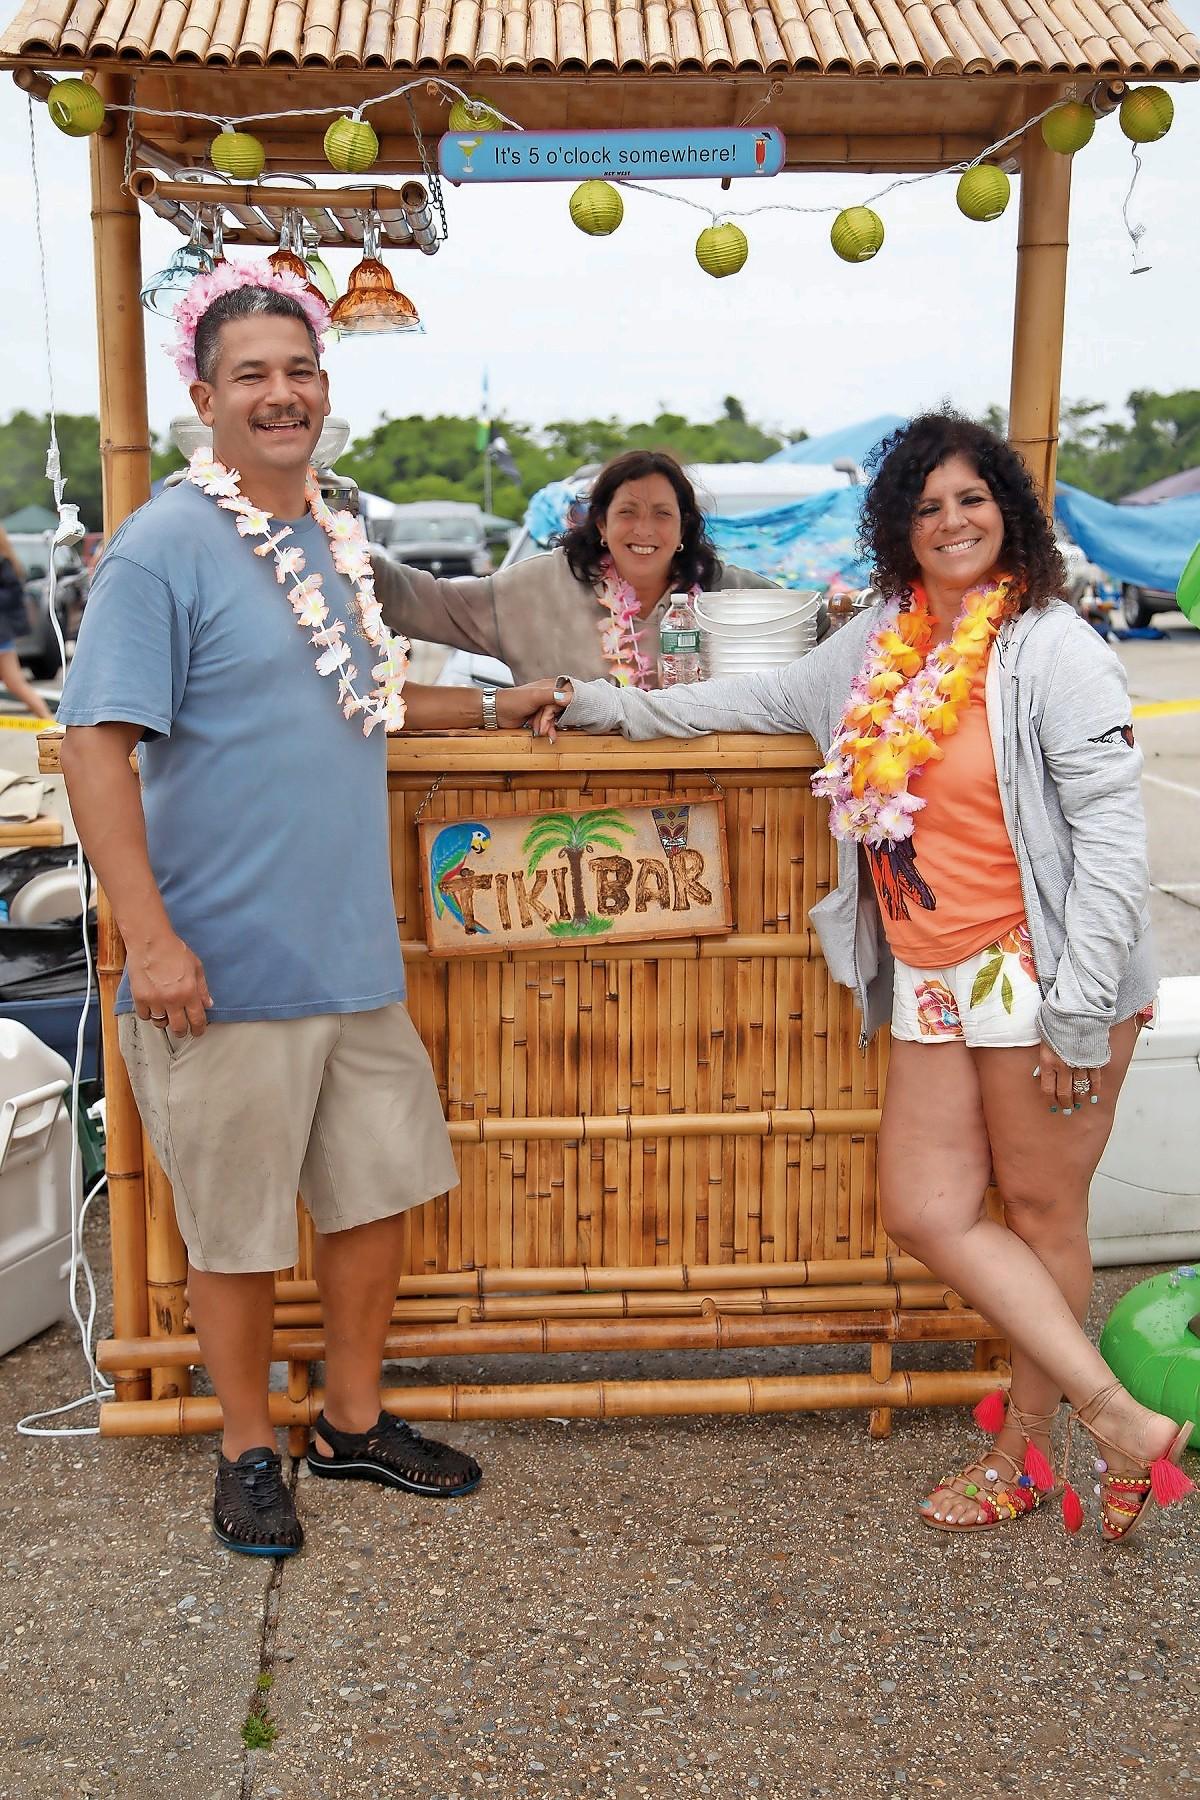 Stanley Parnes, left, Denise Lombardi and Holly Sands, right, sipped on some drinks at their personal tiki bar.